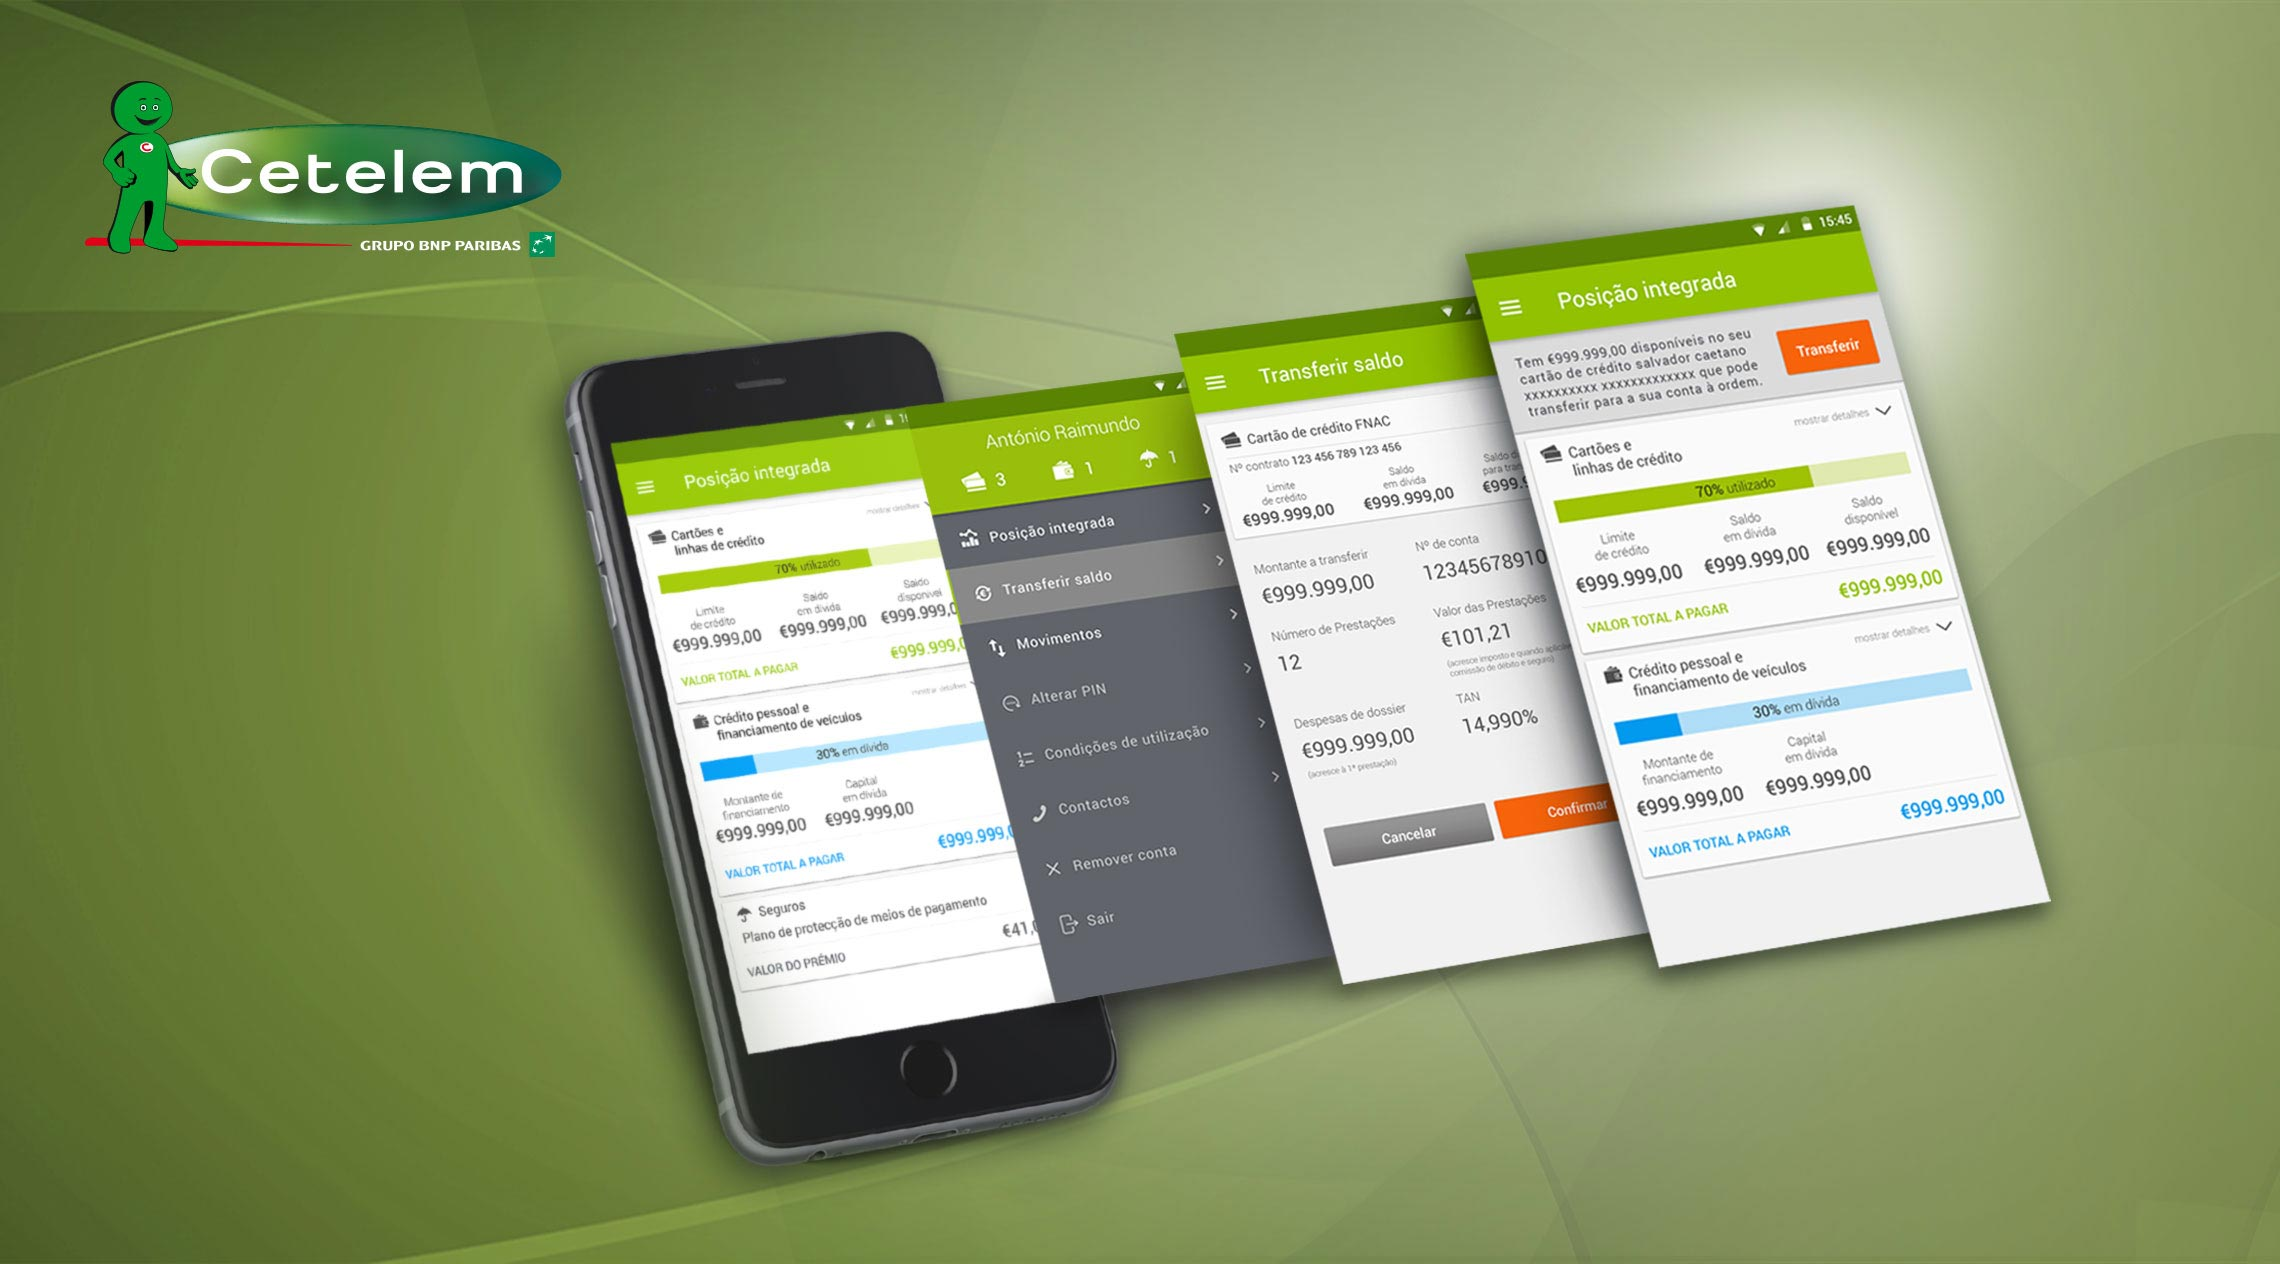 [Success Story]: Cetelem releases mobile apps for iOS and Android, developed by Xpand IT